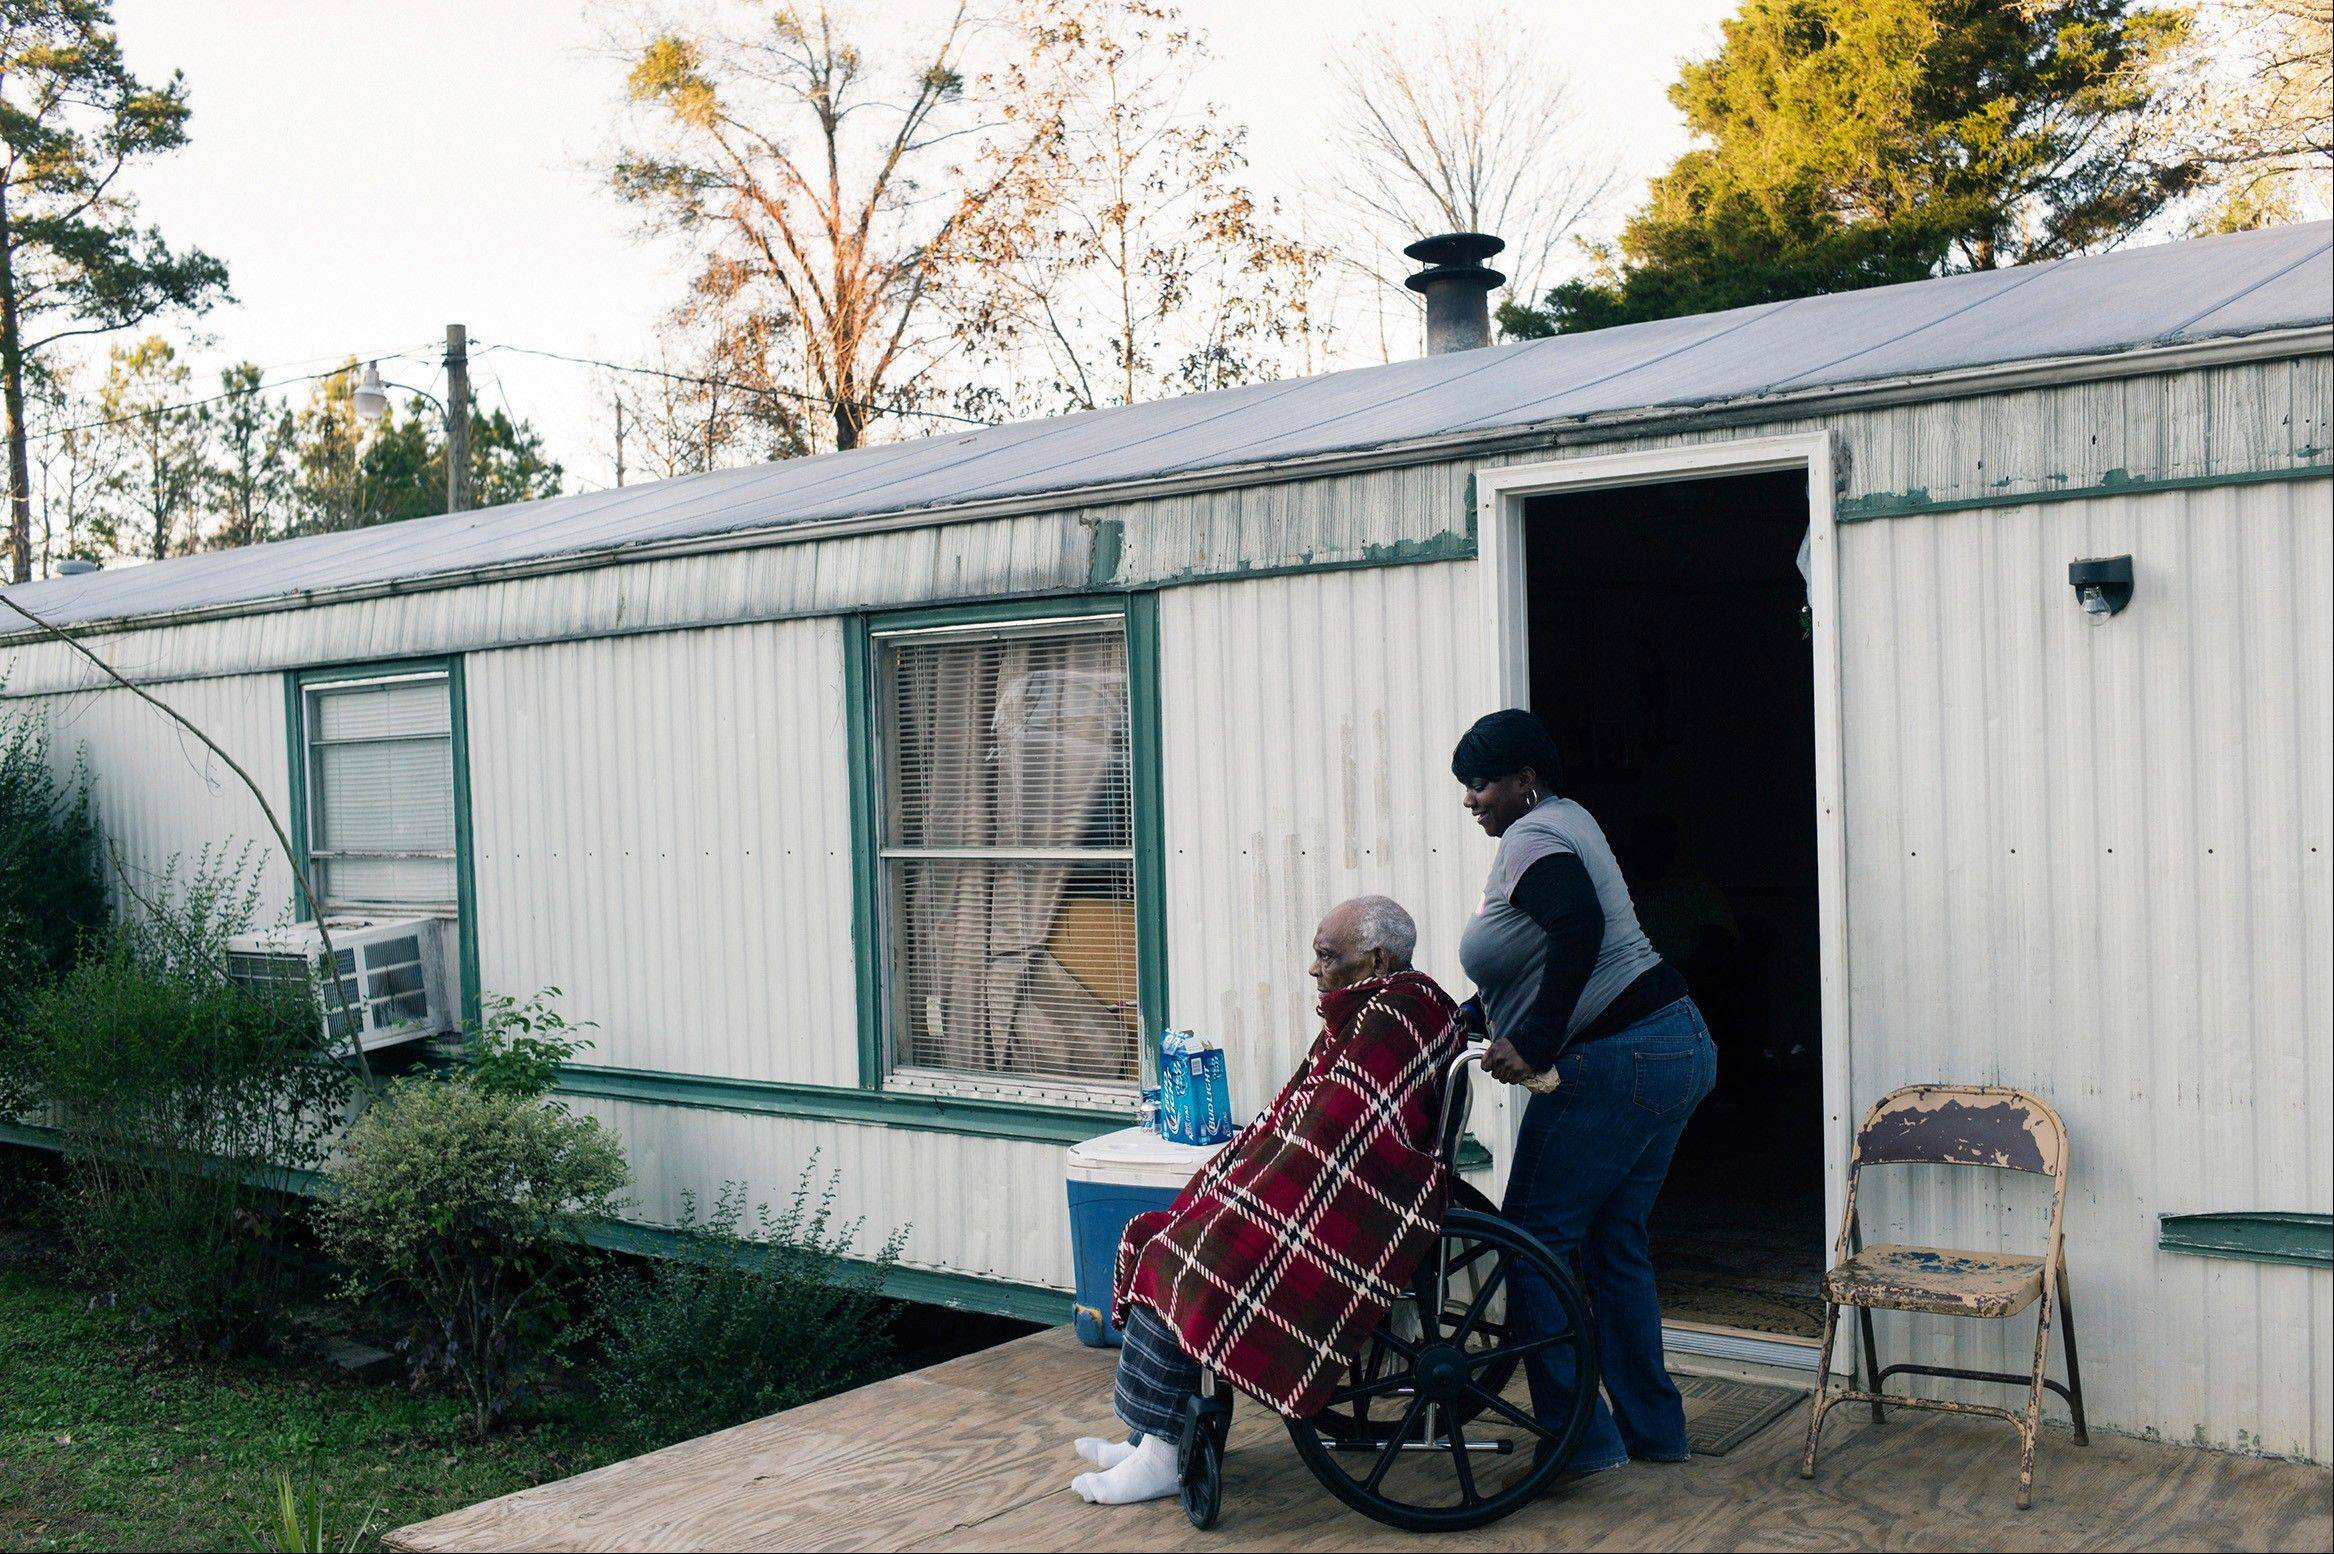 Twanda Blount helps her grandfather Chocolate Blount, 91, with his wheelchair outside their home on Dec. 18 in Pine Hill, Ala. Three years earlier, Chocolate Blount was discharged from hospice care after about a year.